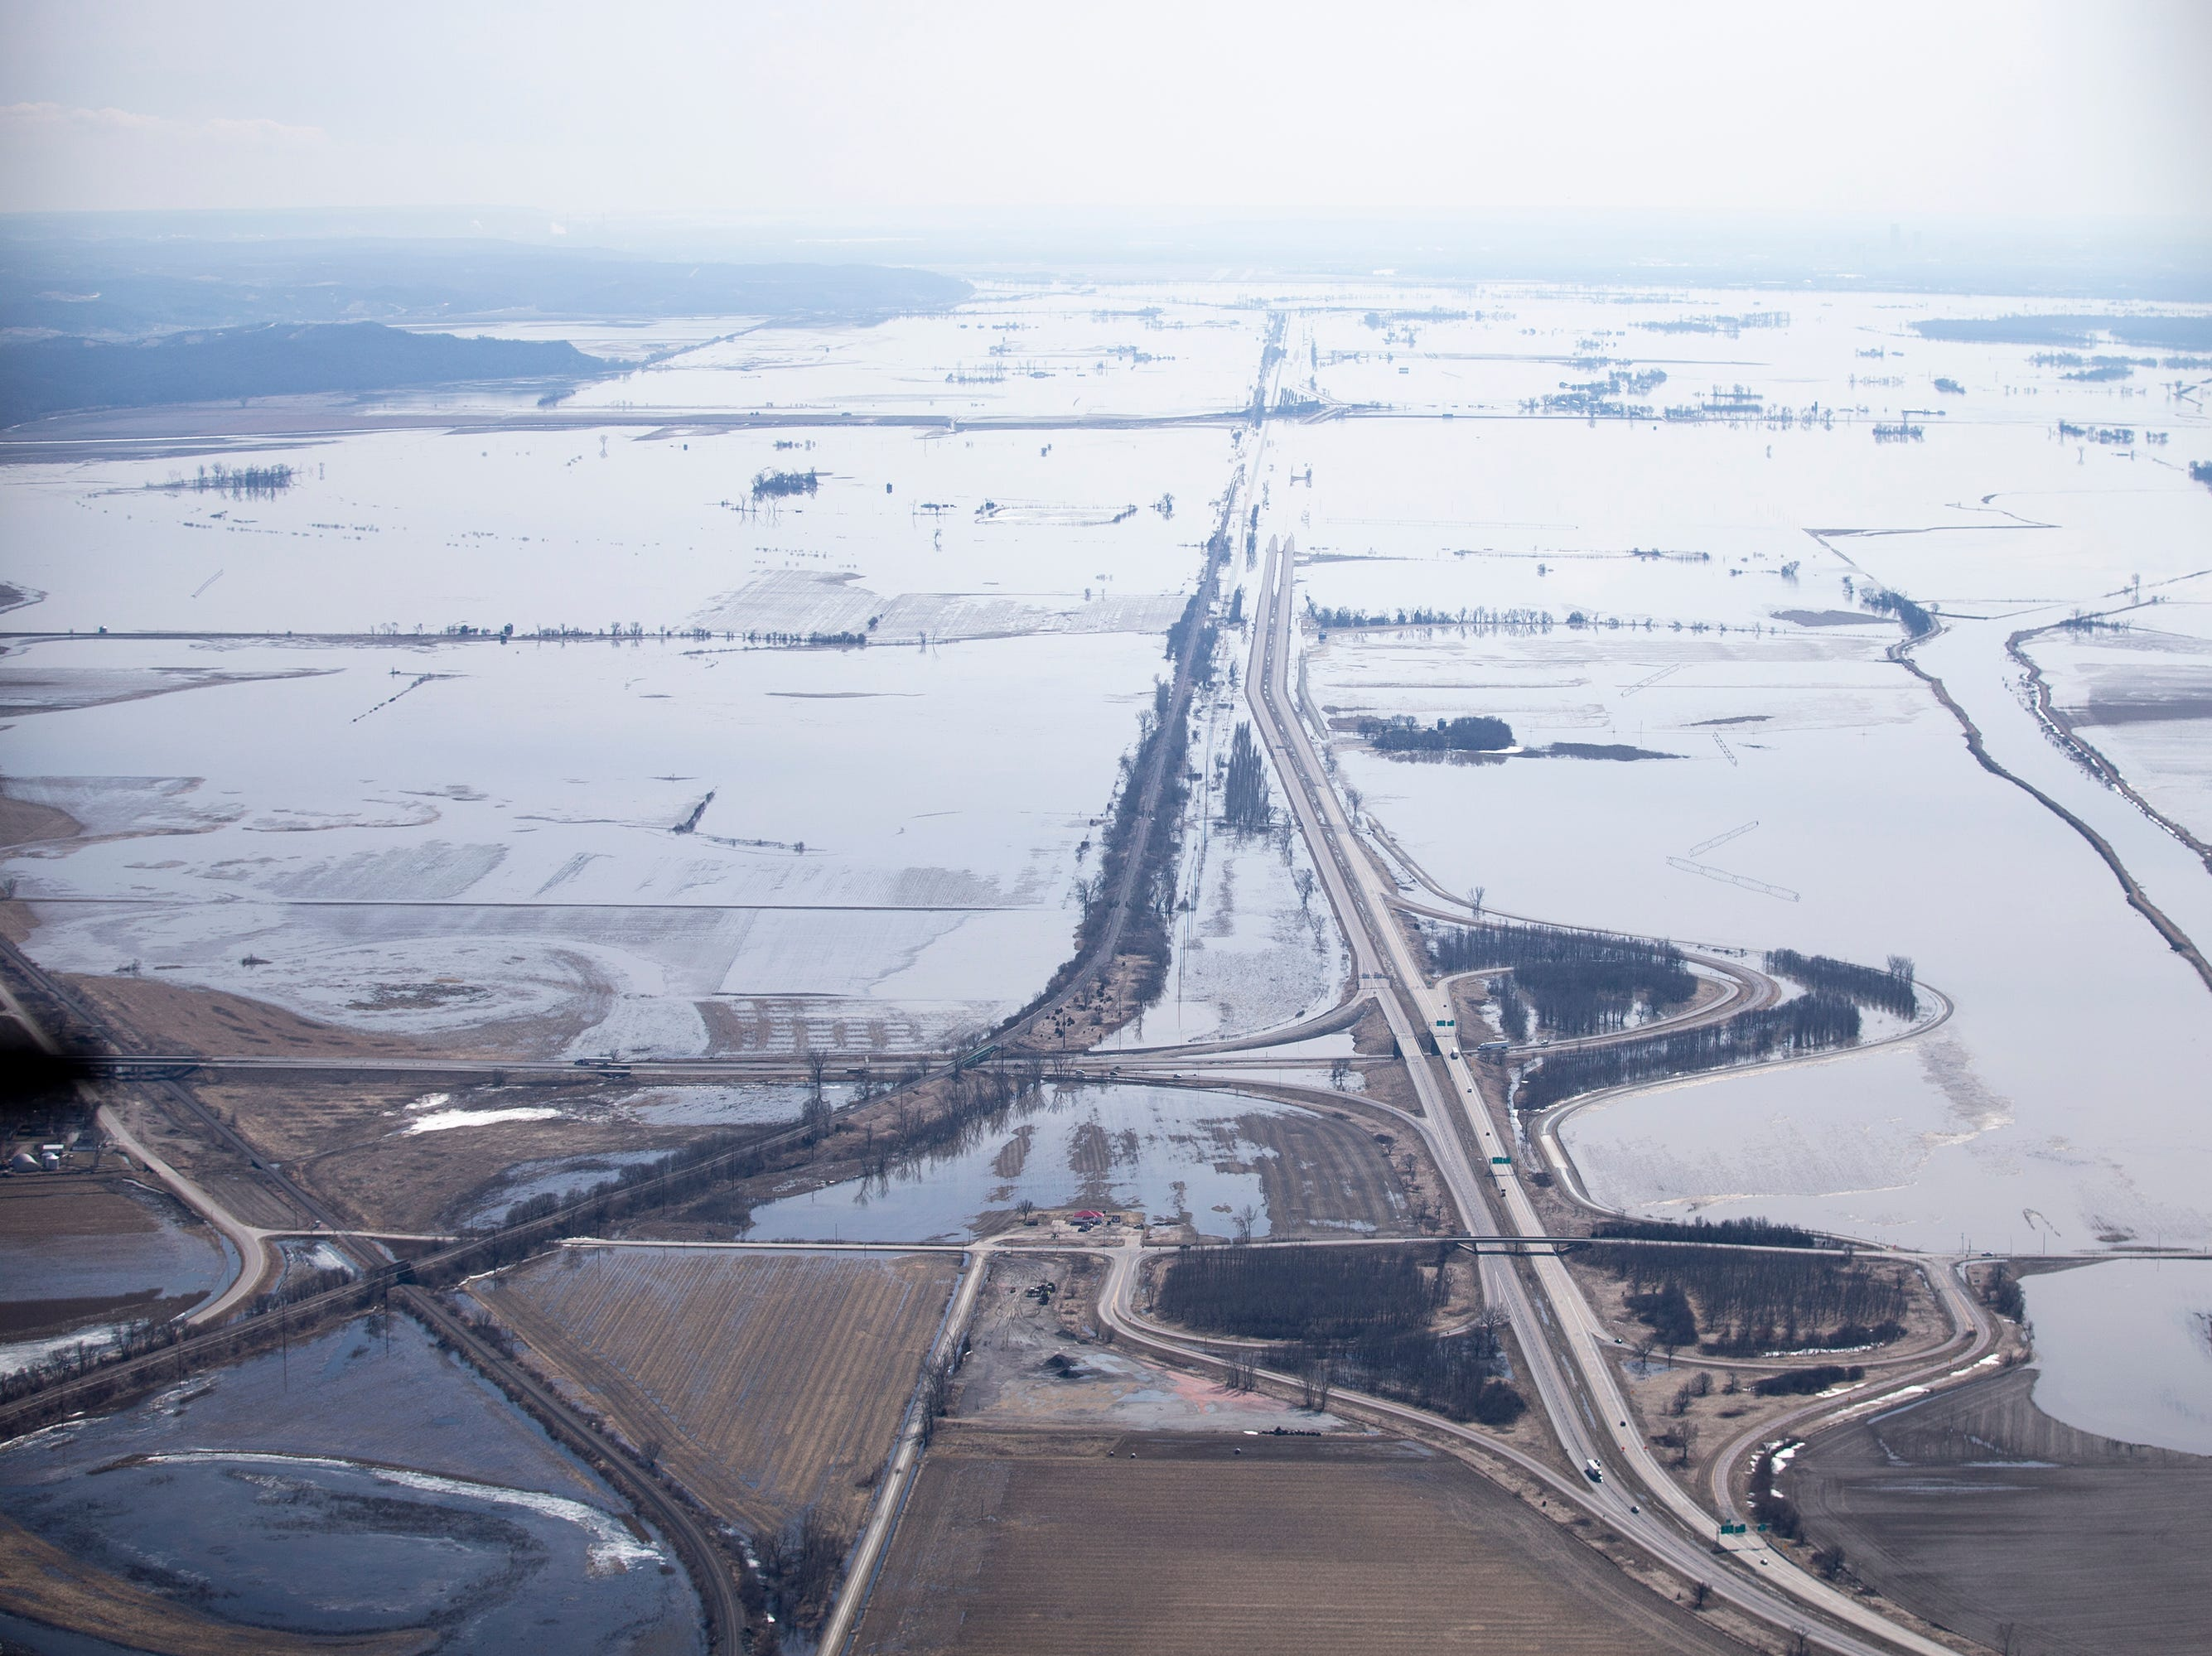 Floodwater from the Missouri River inundates cities and farmland on the western edge of Iowa on Monday, March 18, 2019.